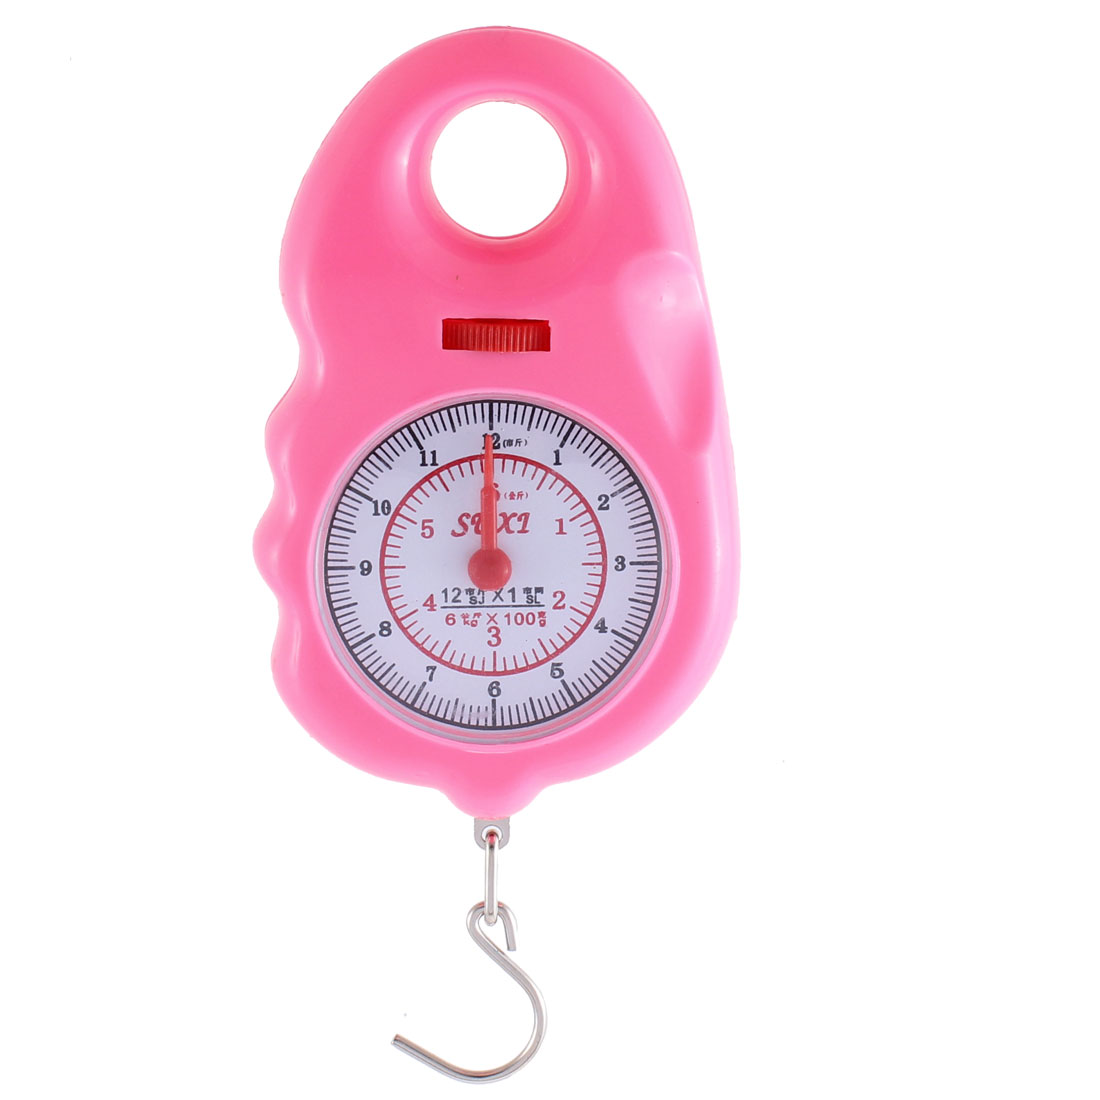 Round Dial Arabic Number Display Portable Scale Weighter 6Kg Pink